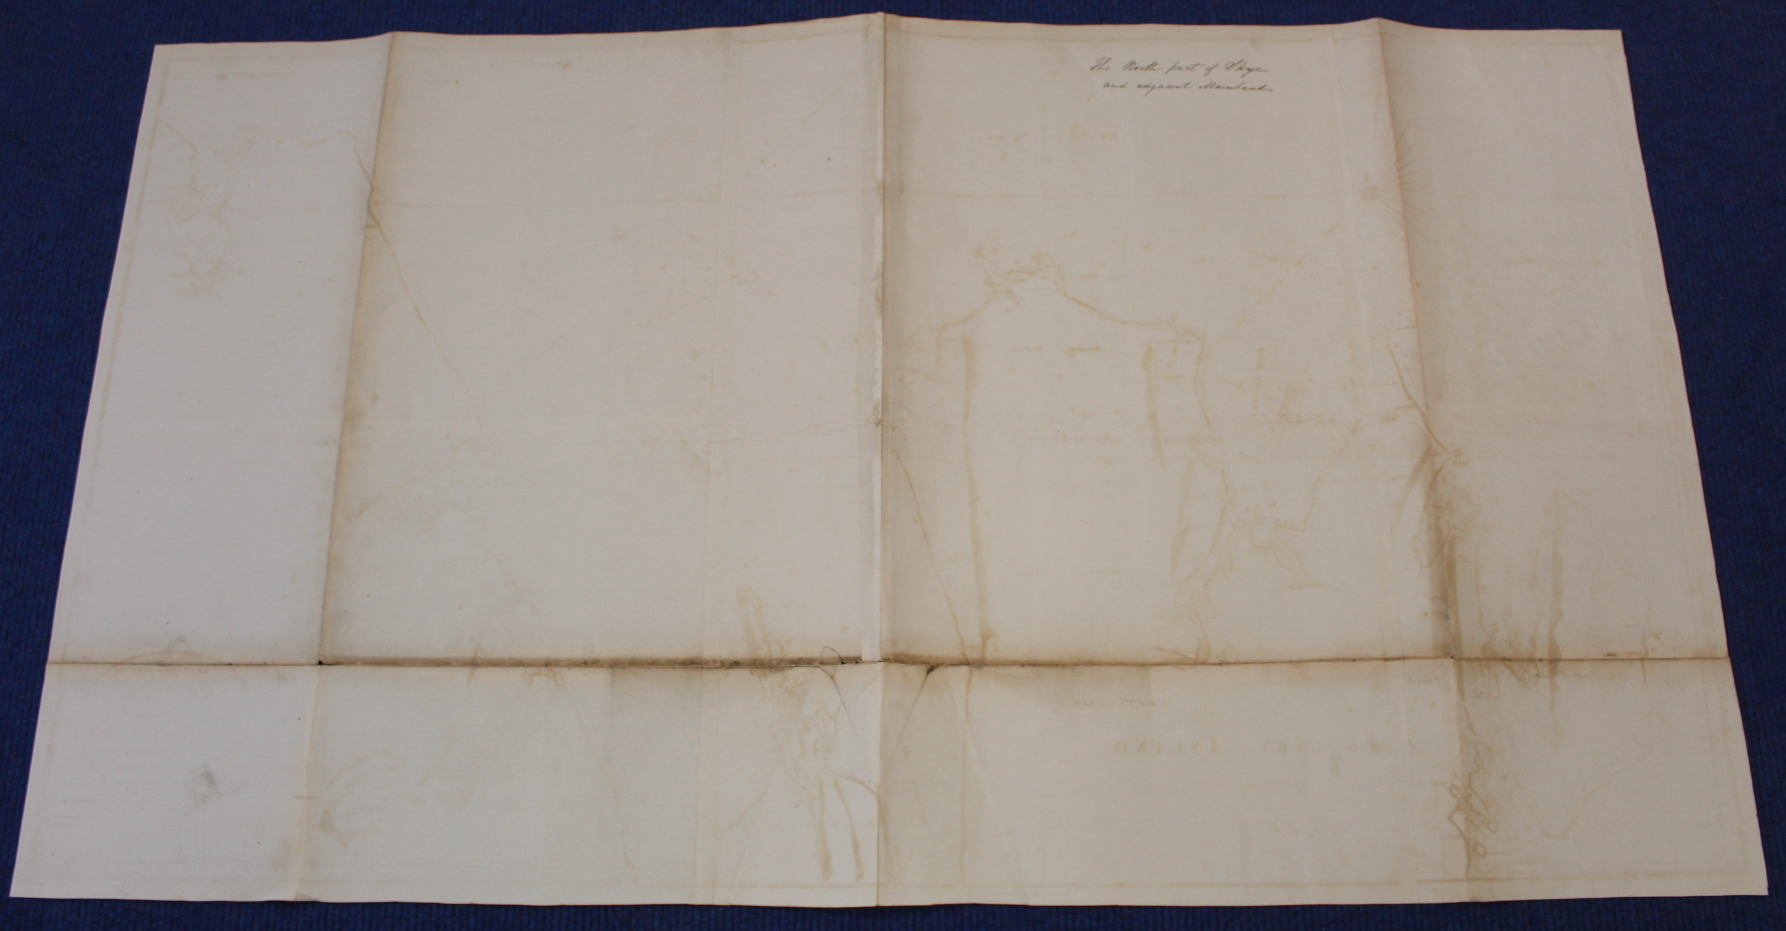 MACKENZIE MURDOCH (SNR.).A General Chart of the West Coast & Western Islands of Scotland from - Image 54 of 66